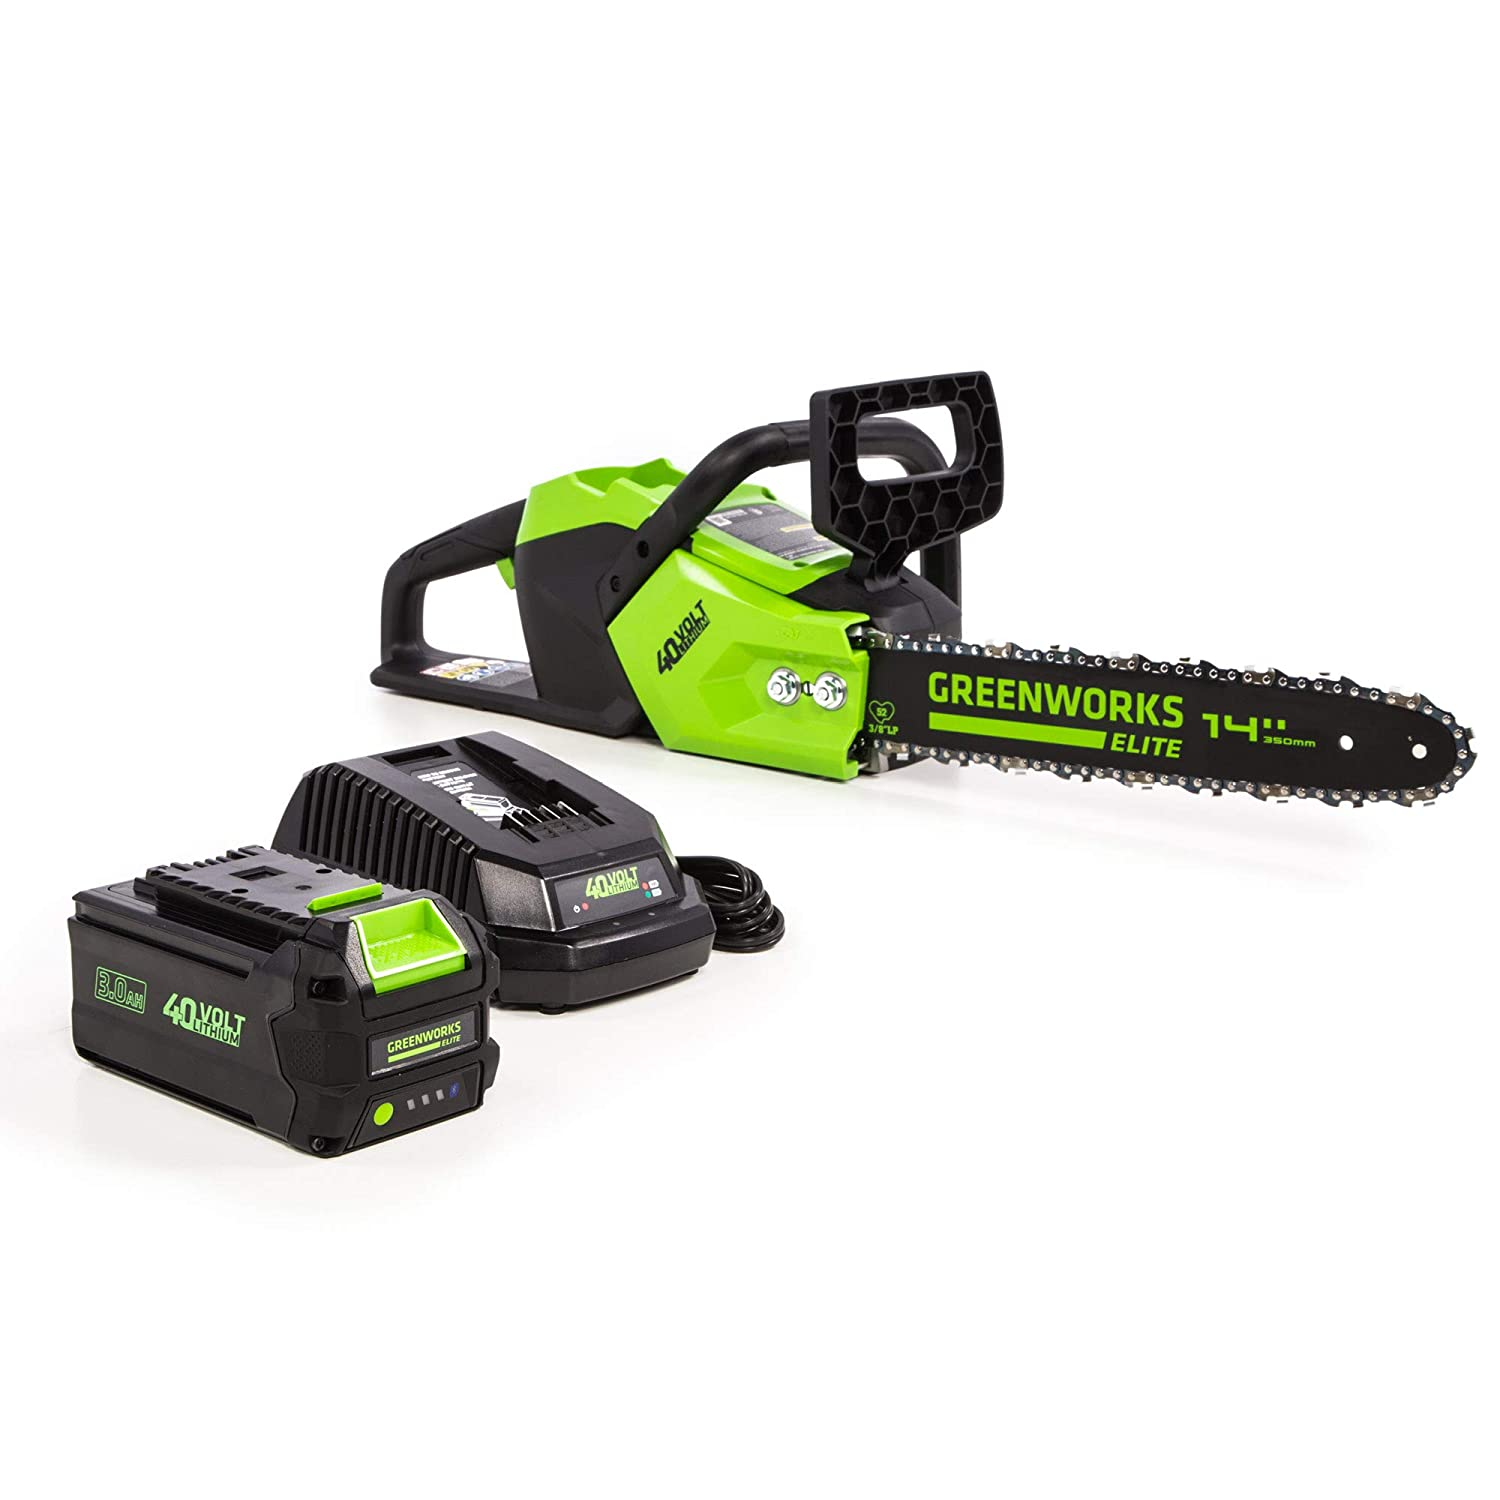 Greenworks 14-Inch 40V Brushless Cordless Chainsaw, 3AH Battery USB Hub CS-140